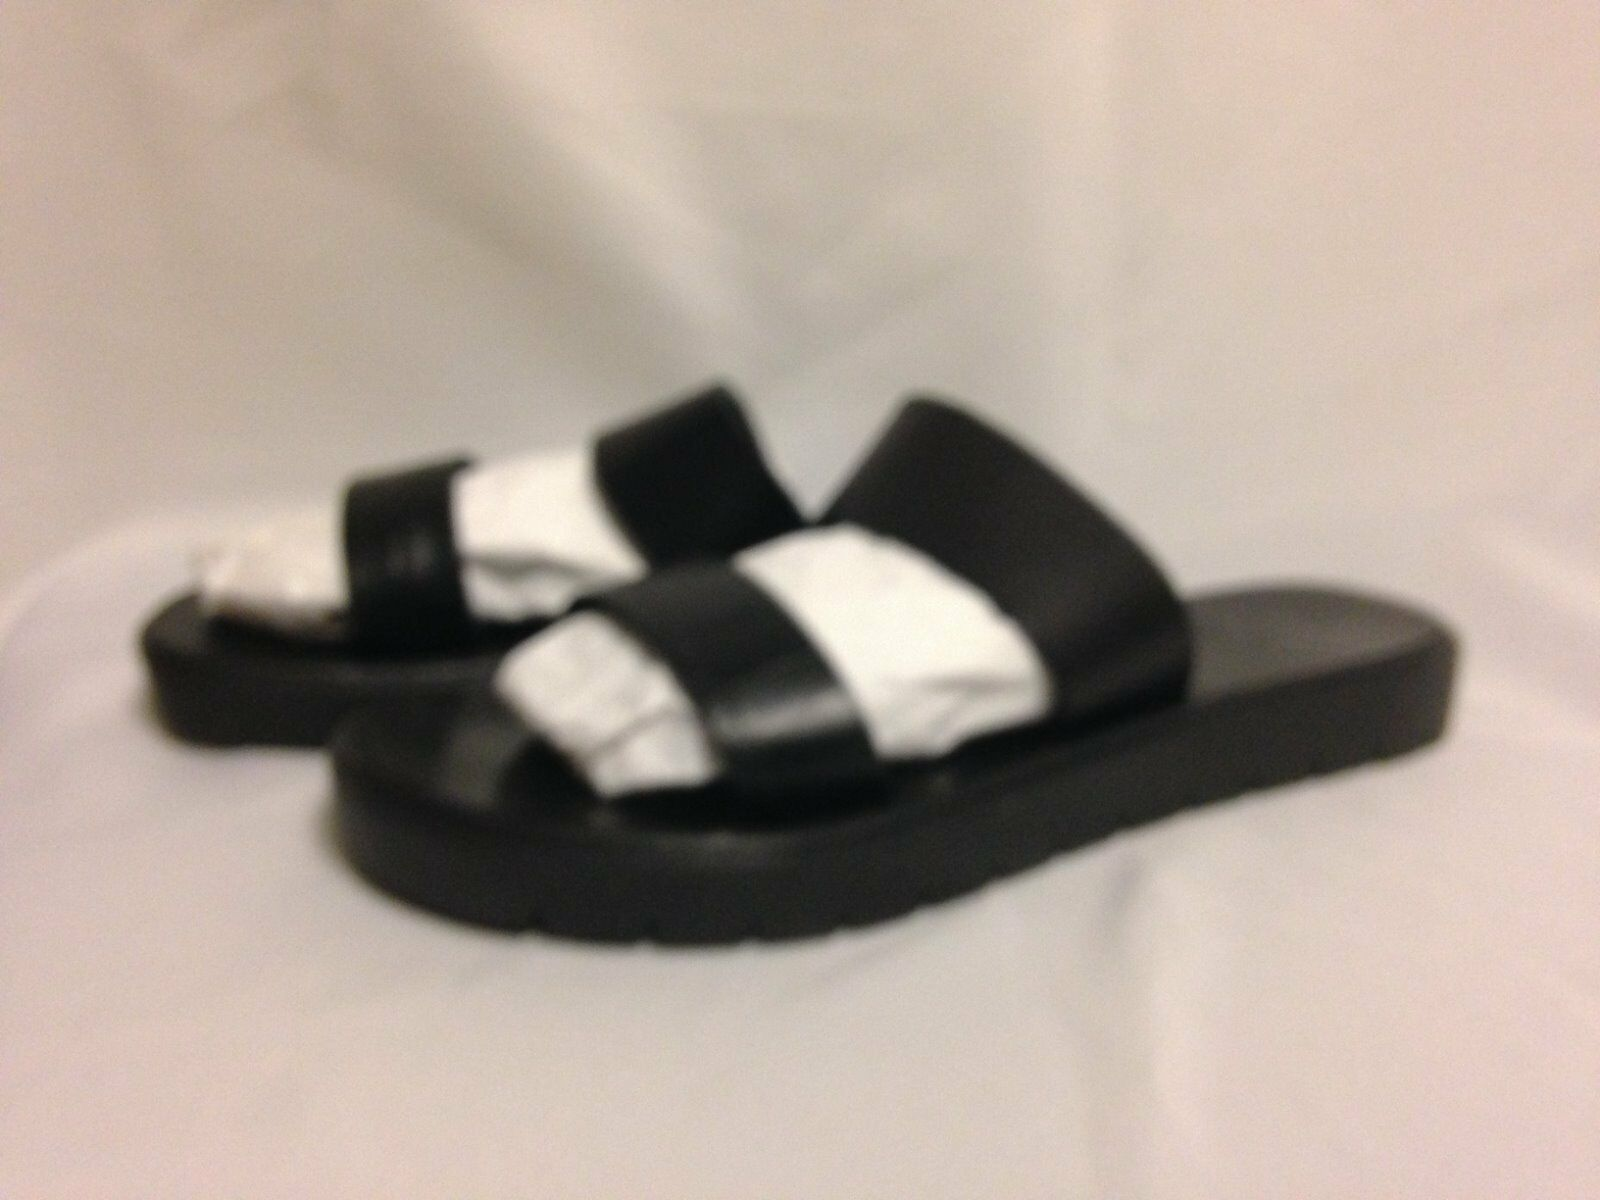 Joie A La Plage Plage Plage Tulum Double Strap Sandal 36.5  6.5M Black Leather  New with Box 116a78